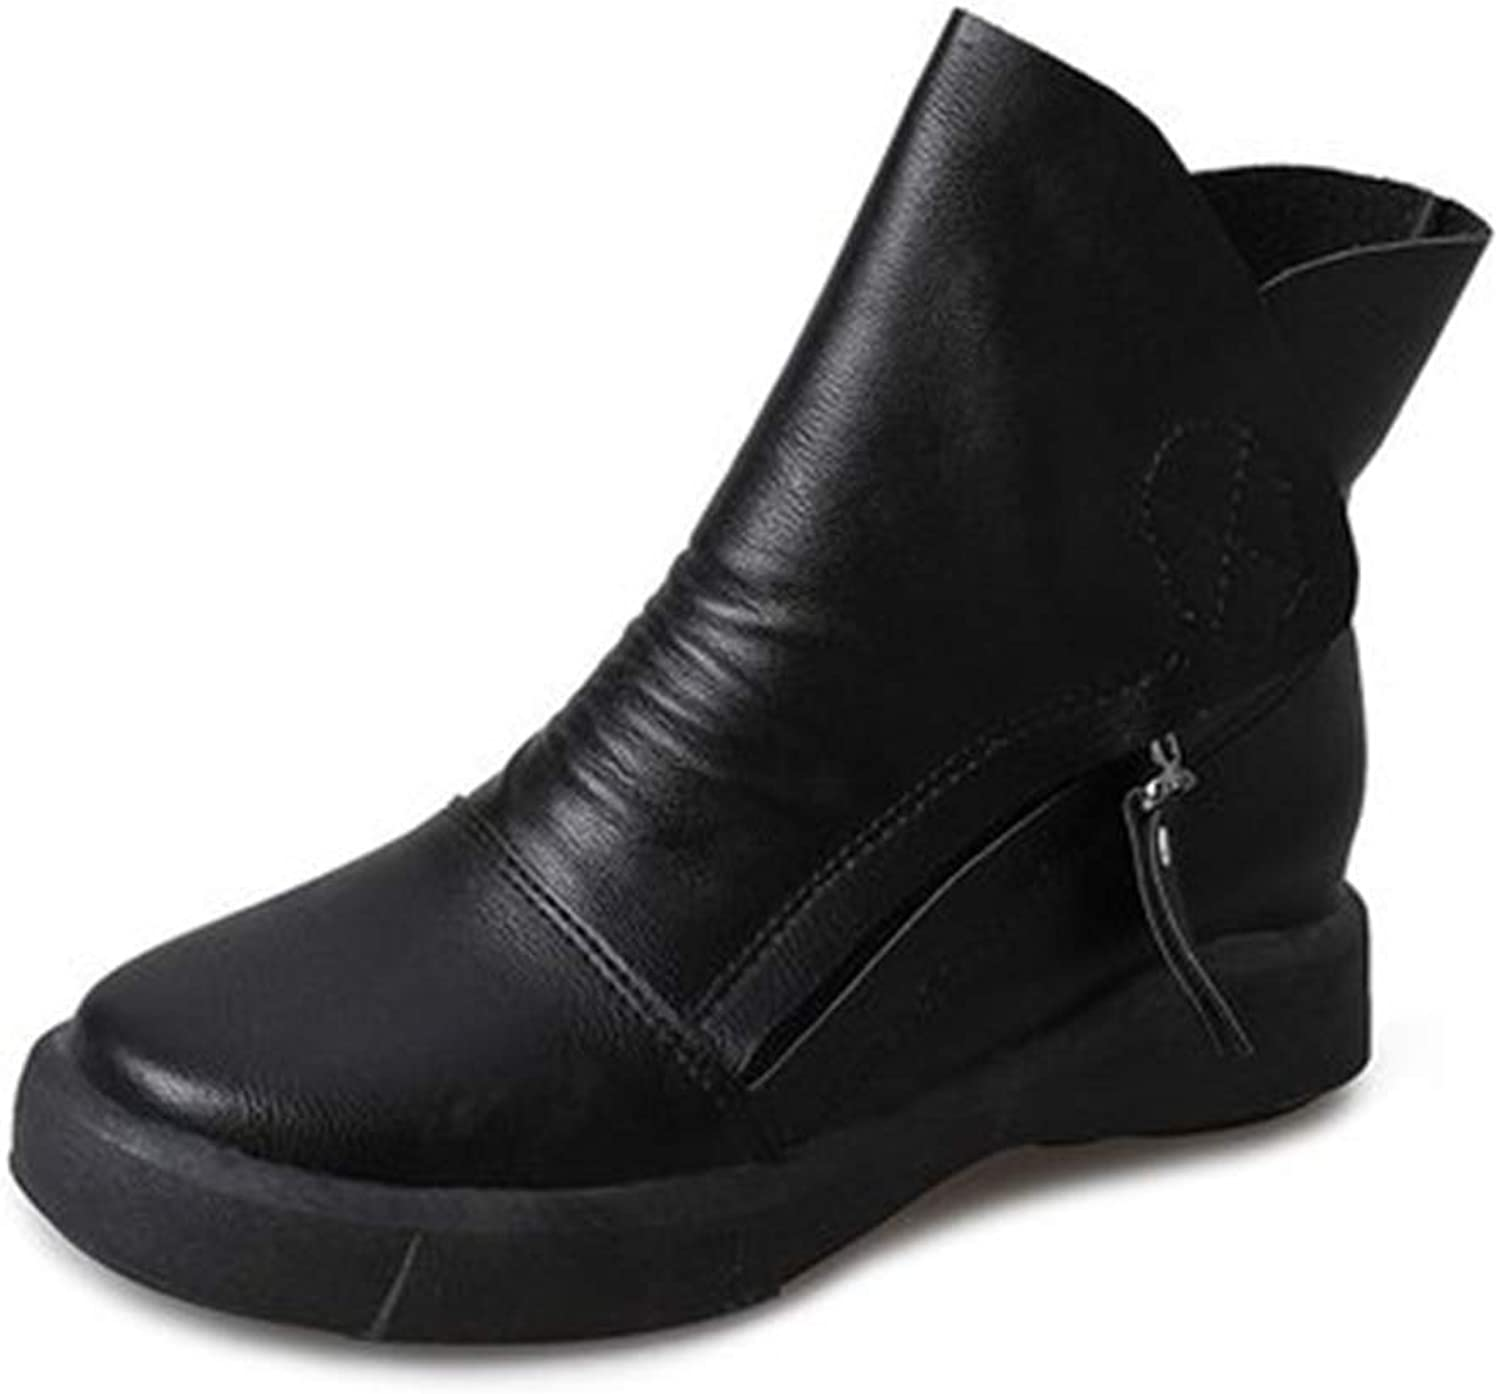 Quality.A Women's Martin Boots Elegant Casual Boots Student Boots Snow Boots